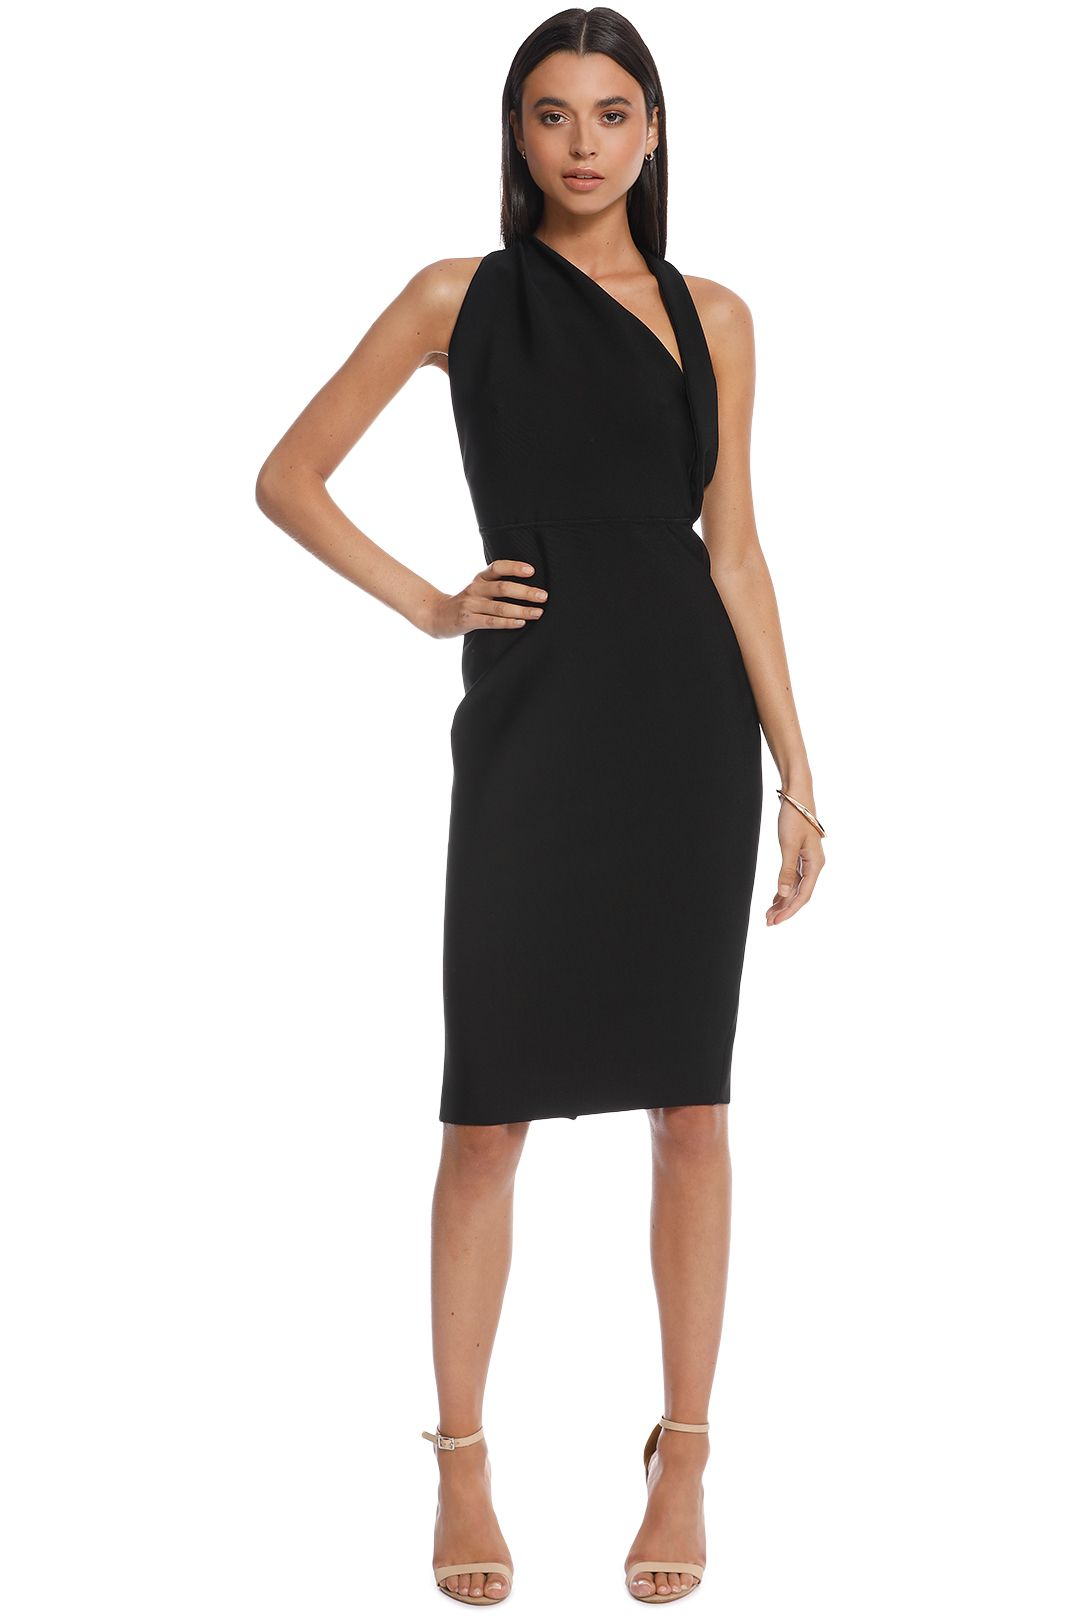 Misha Collection - Misu Dress - Black - Front